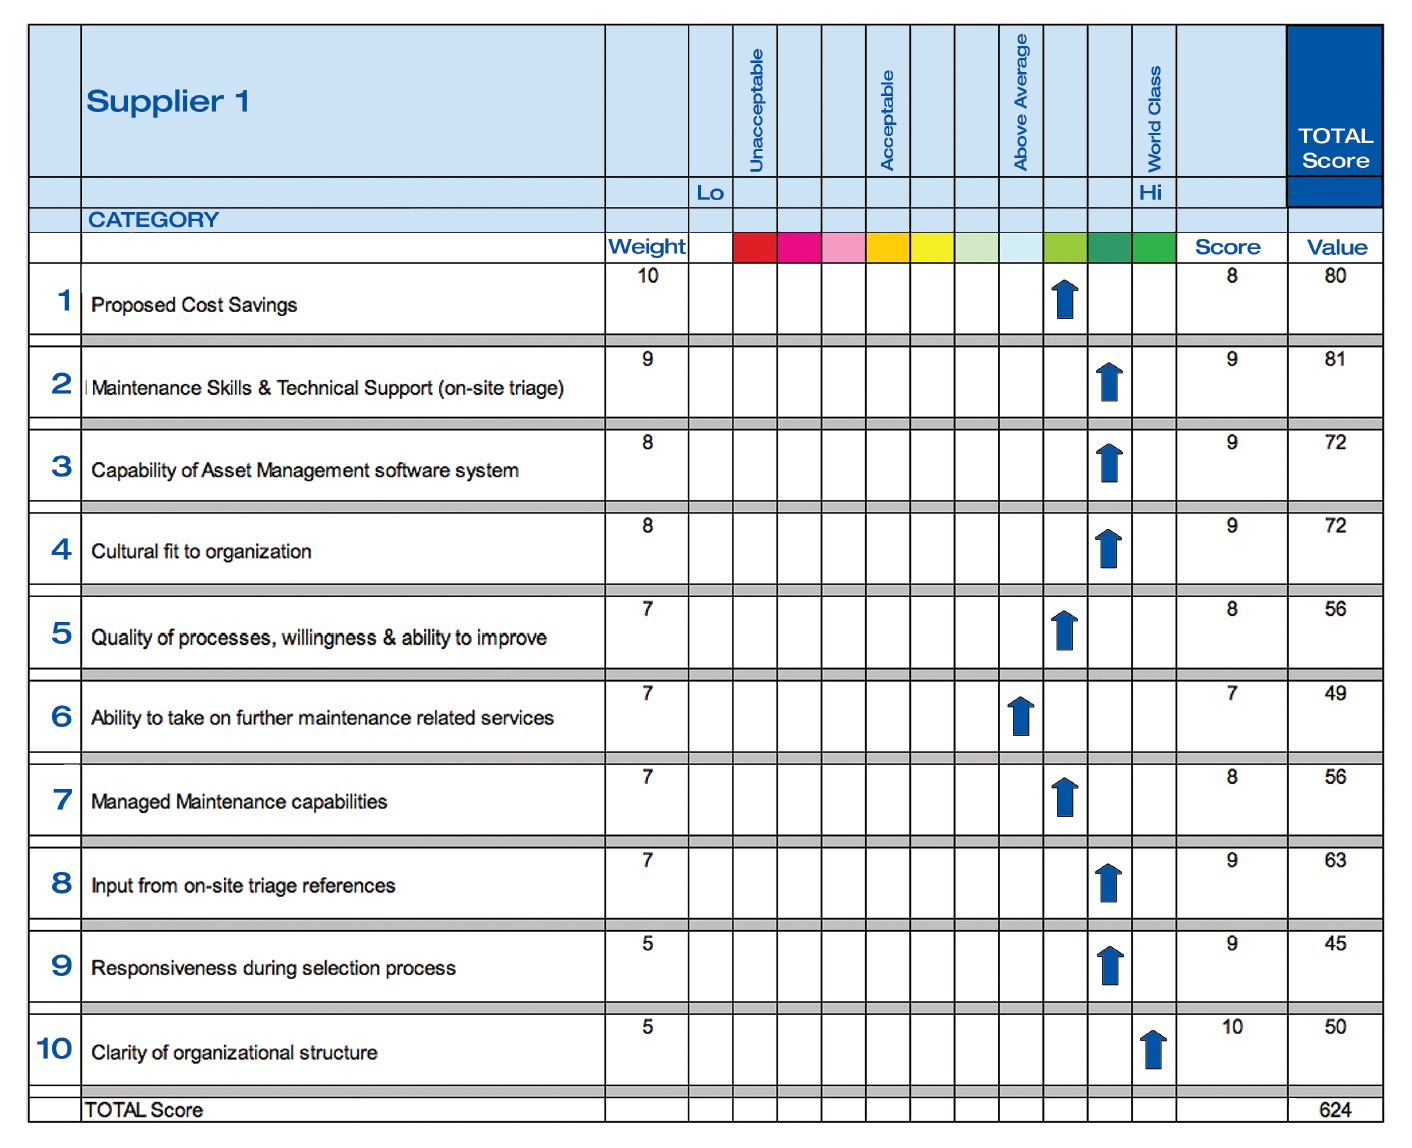 Figure 3 Supplier scores table